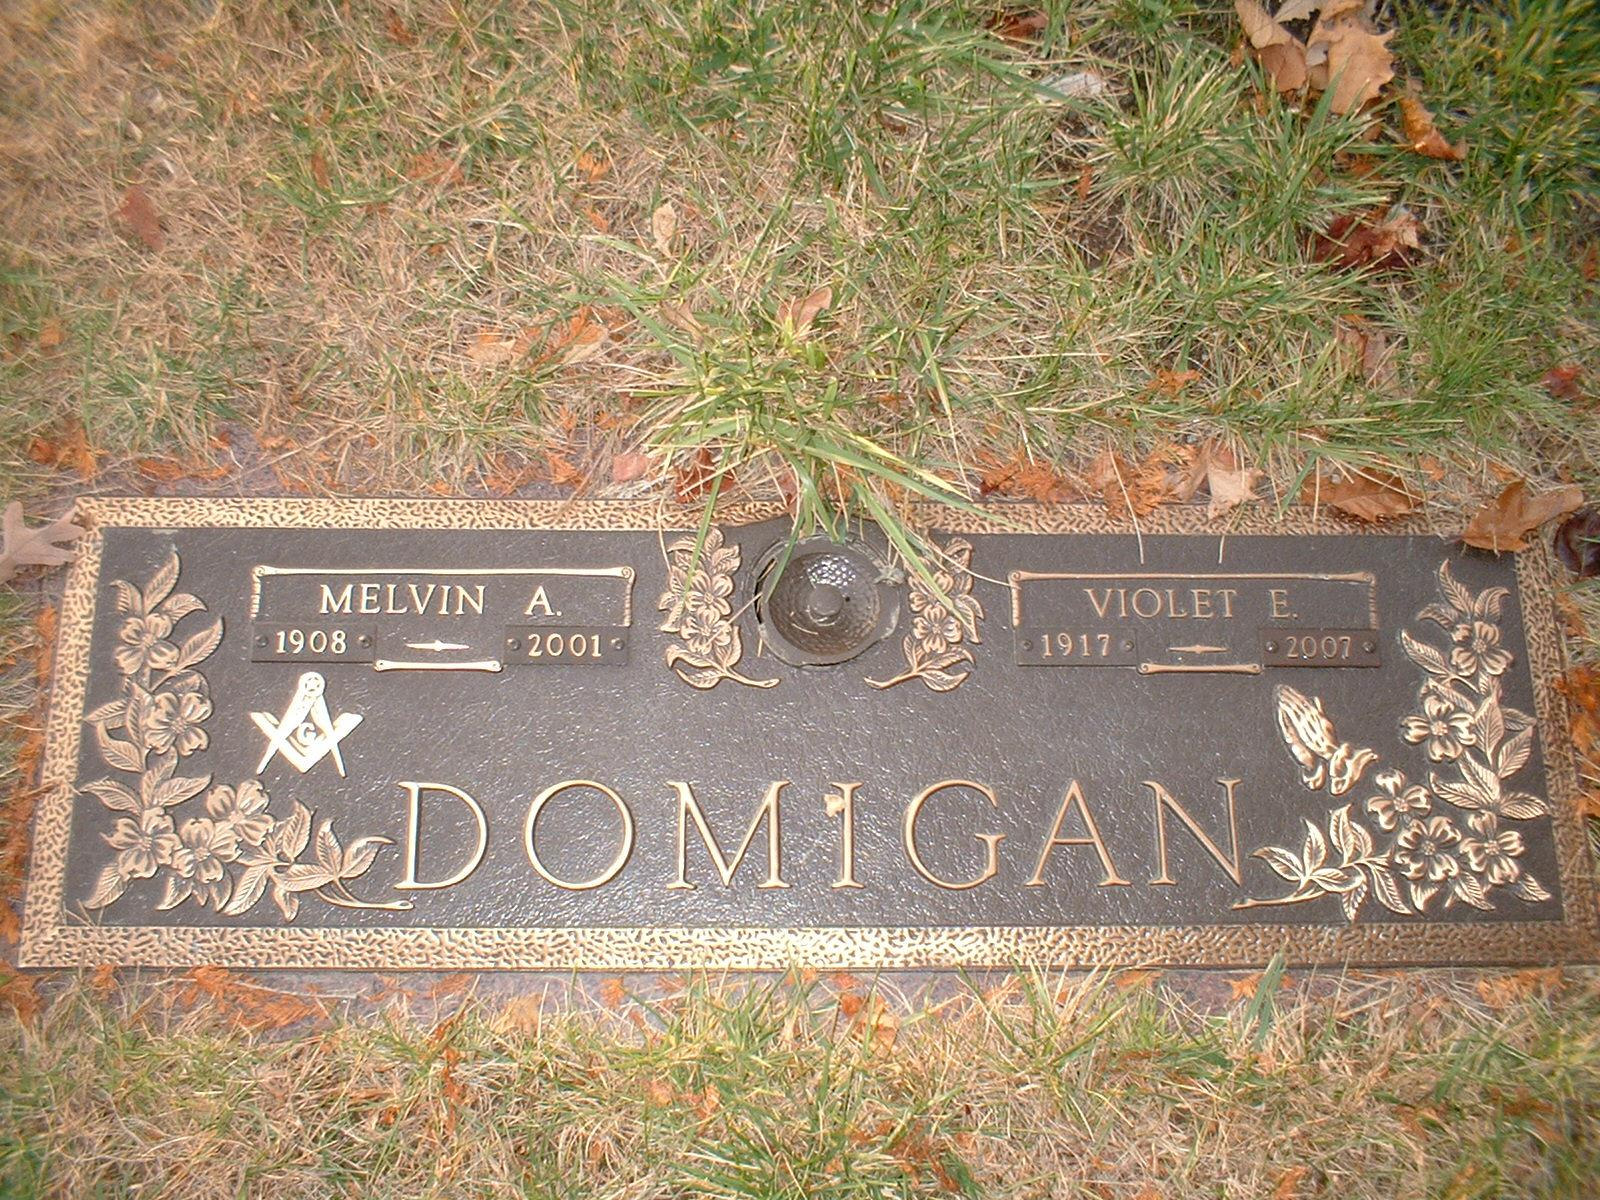 Domigan-Melivin-and-Violet